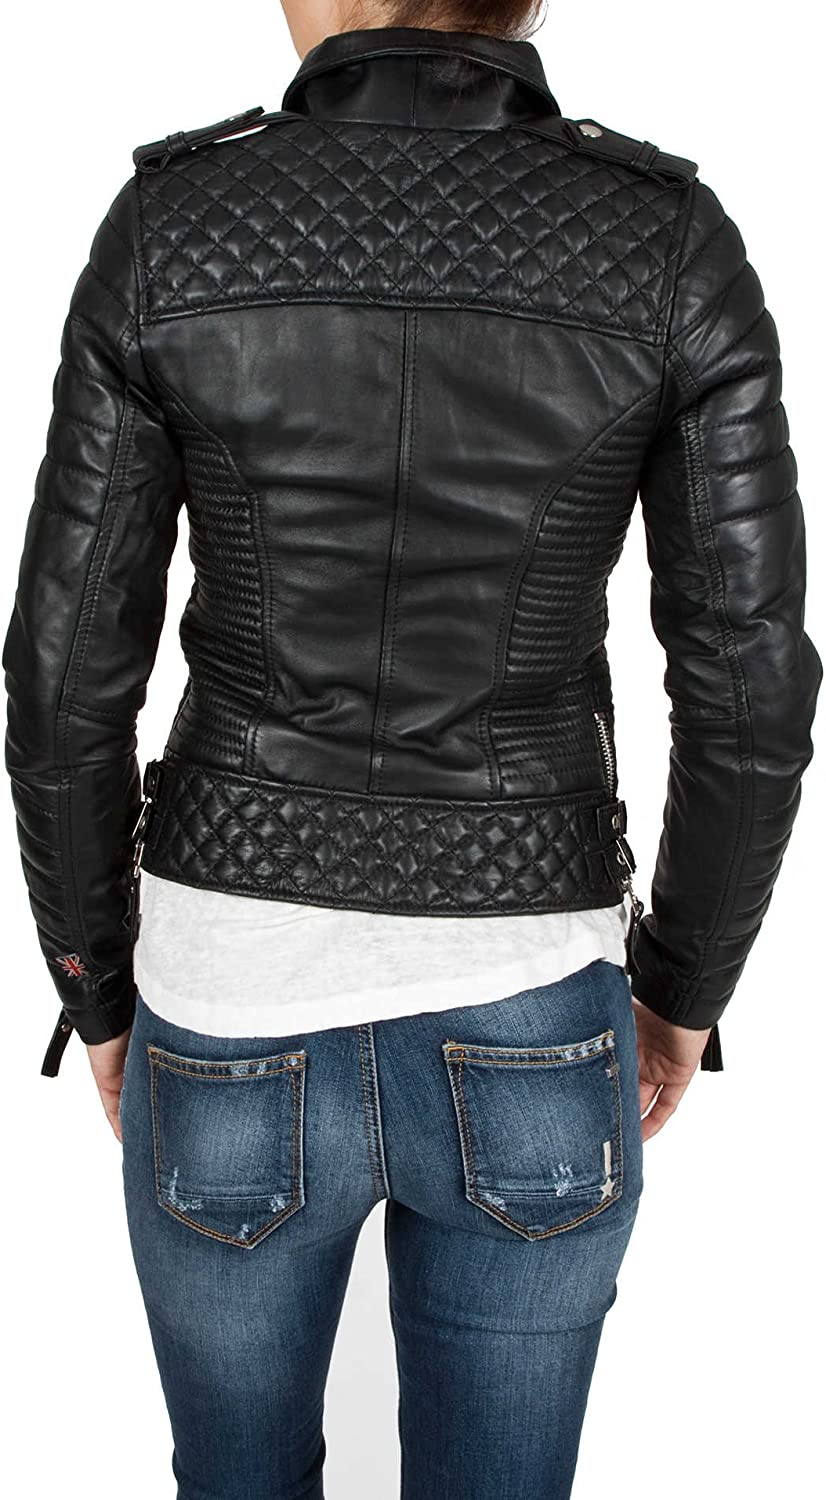 Aries Leathers Women New Biker Real Lambskin Leather Jacket WJ04